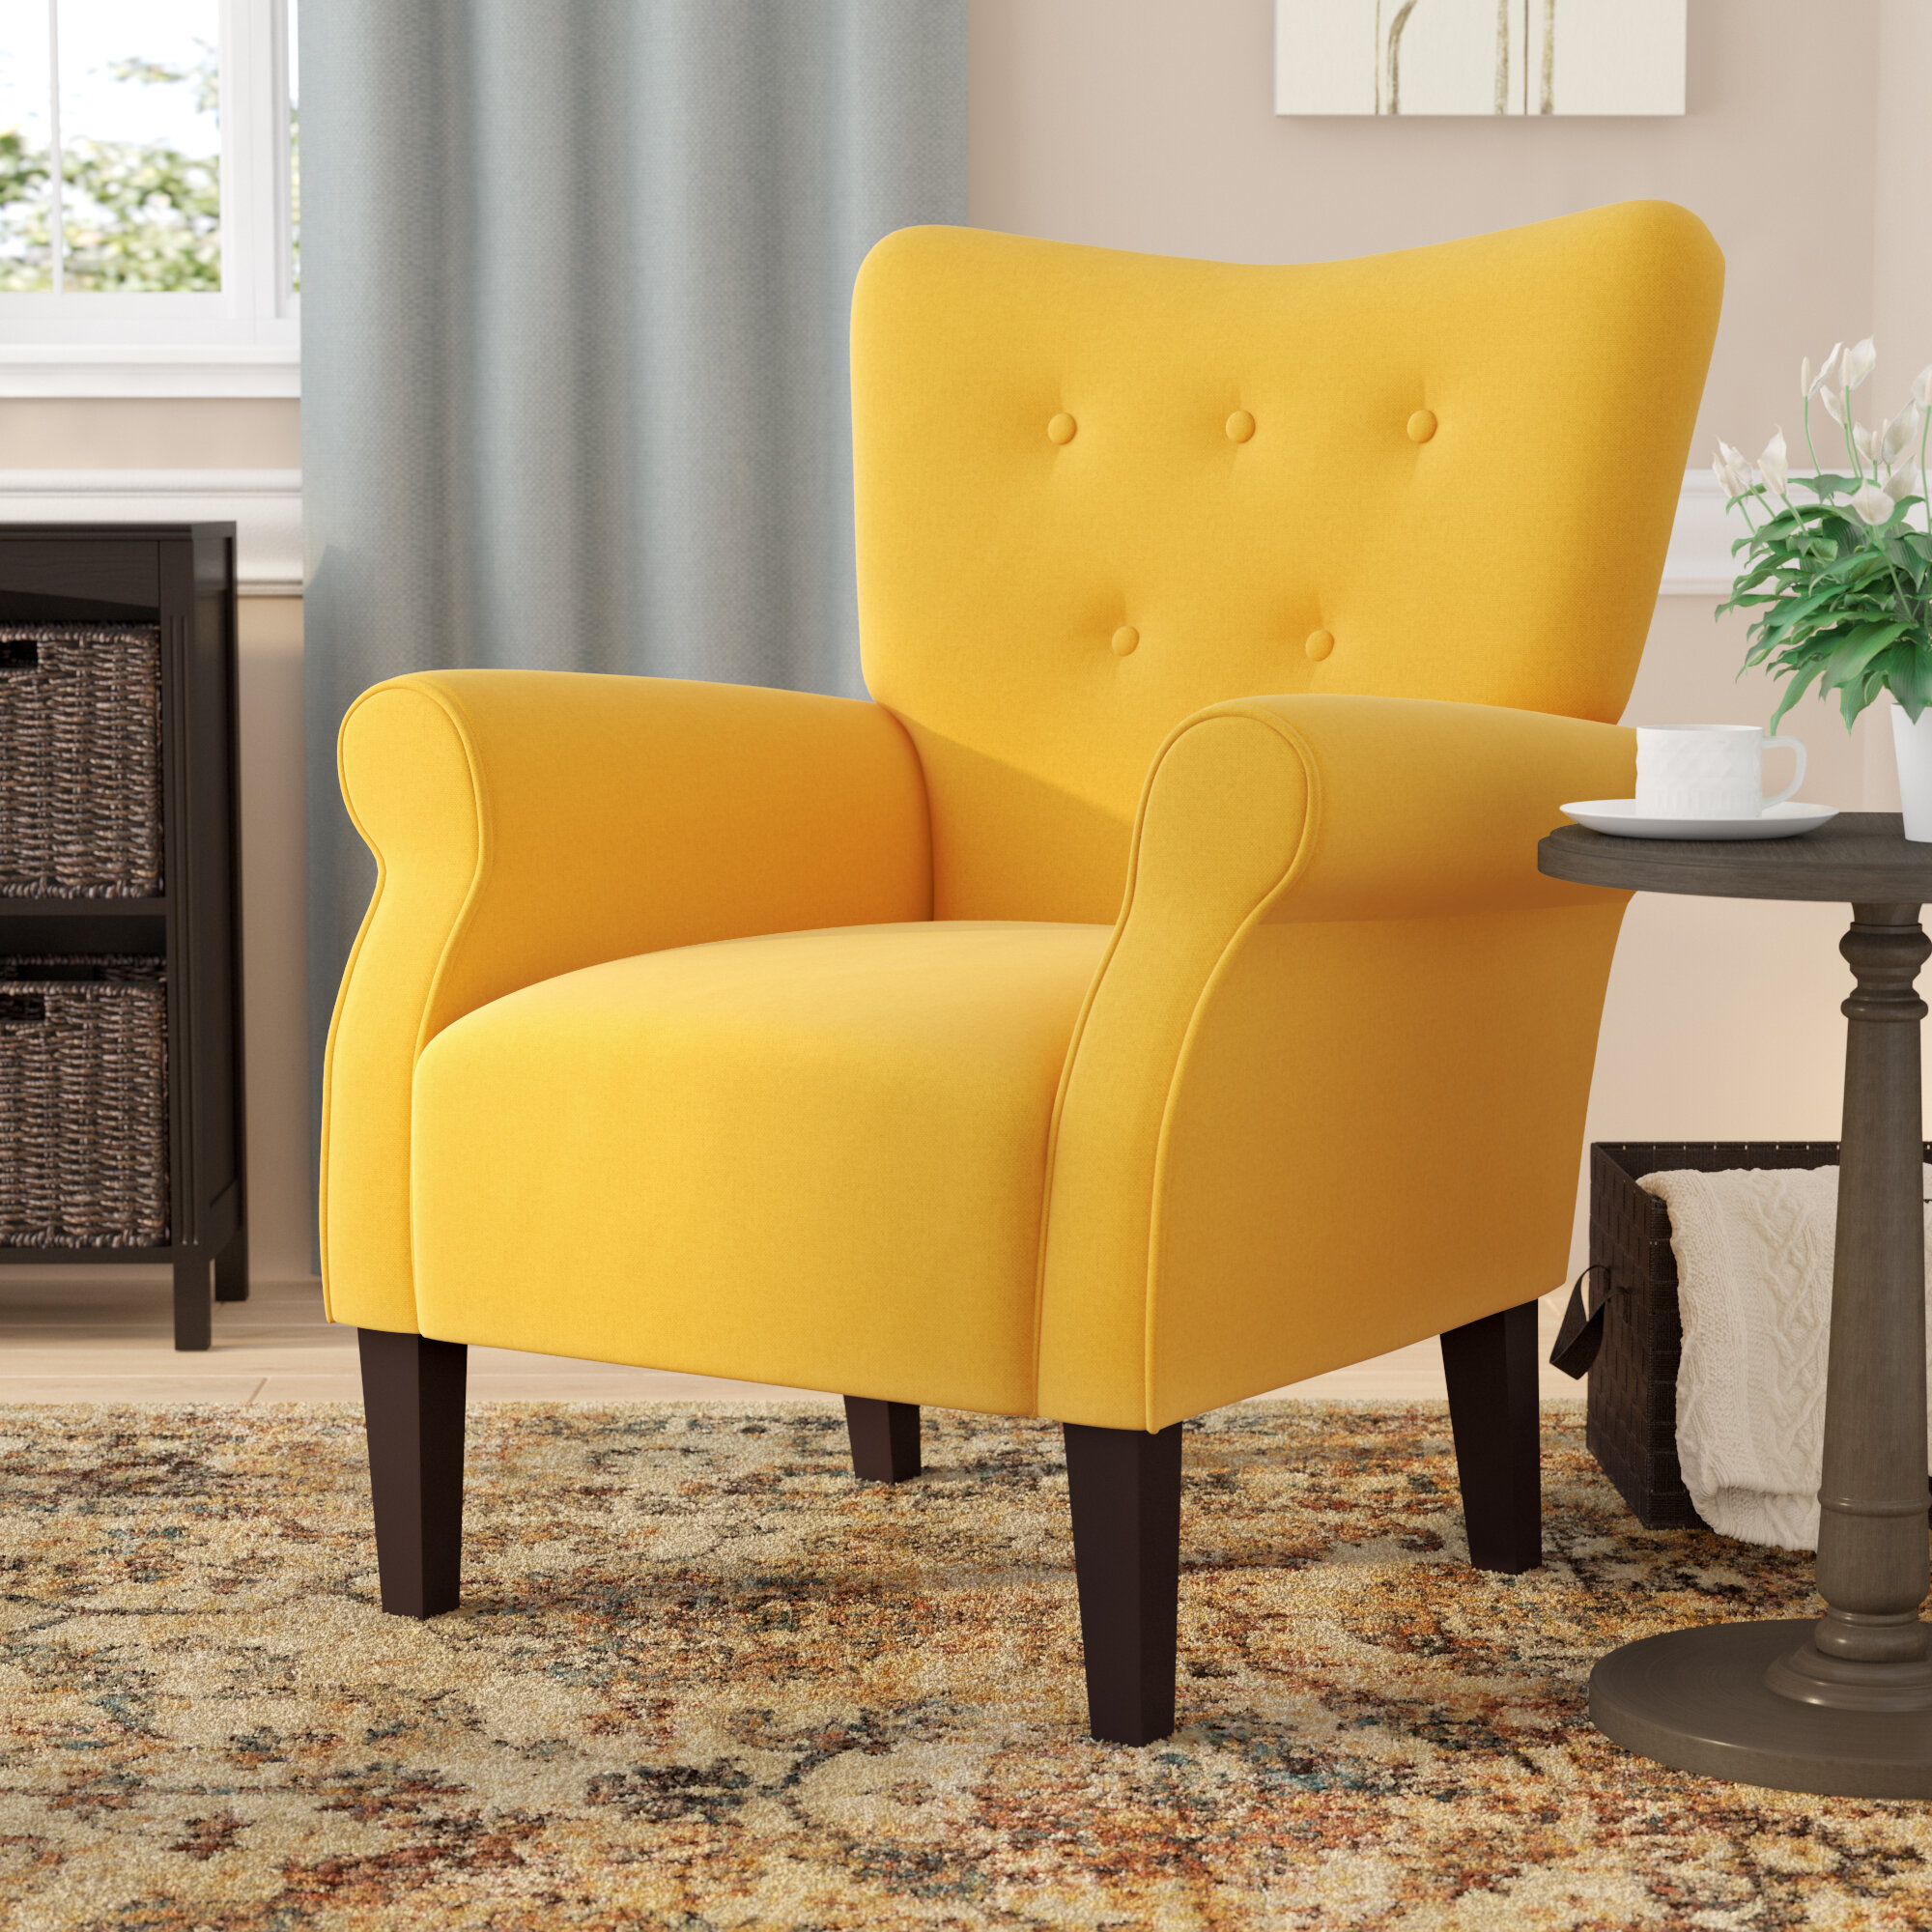 Armchairs | Wayfair With Focht Armchairs (View 15 of 15)